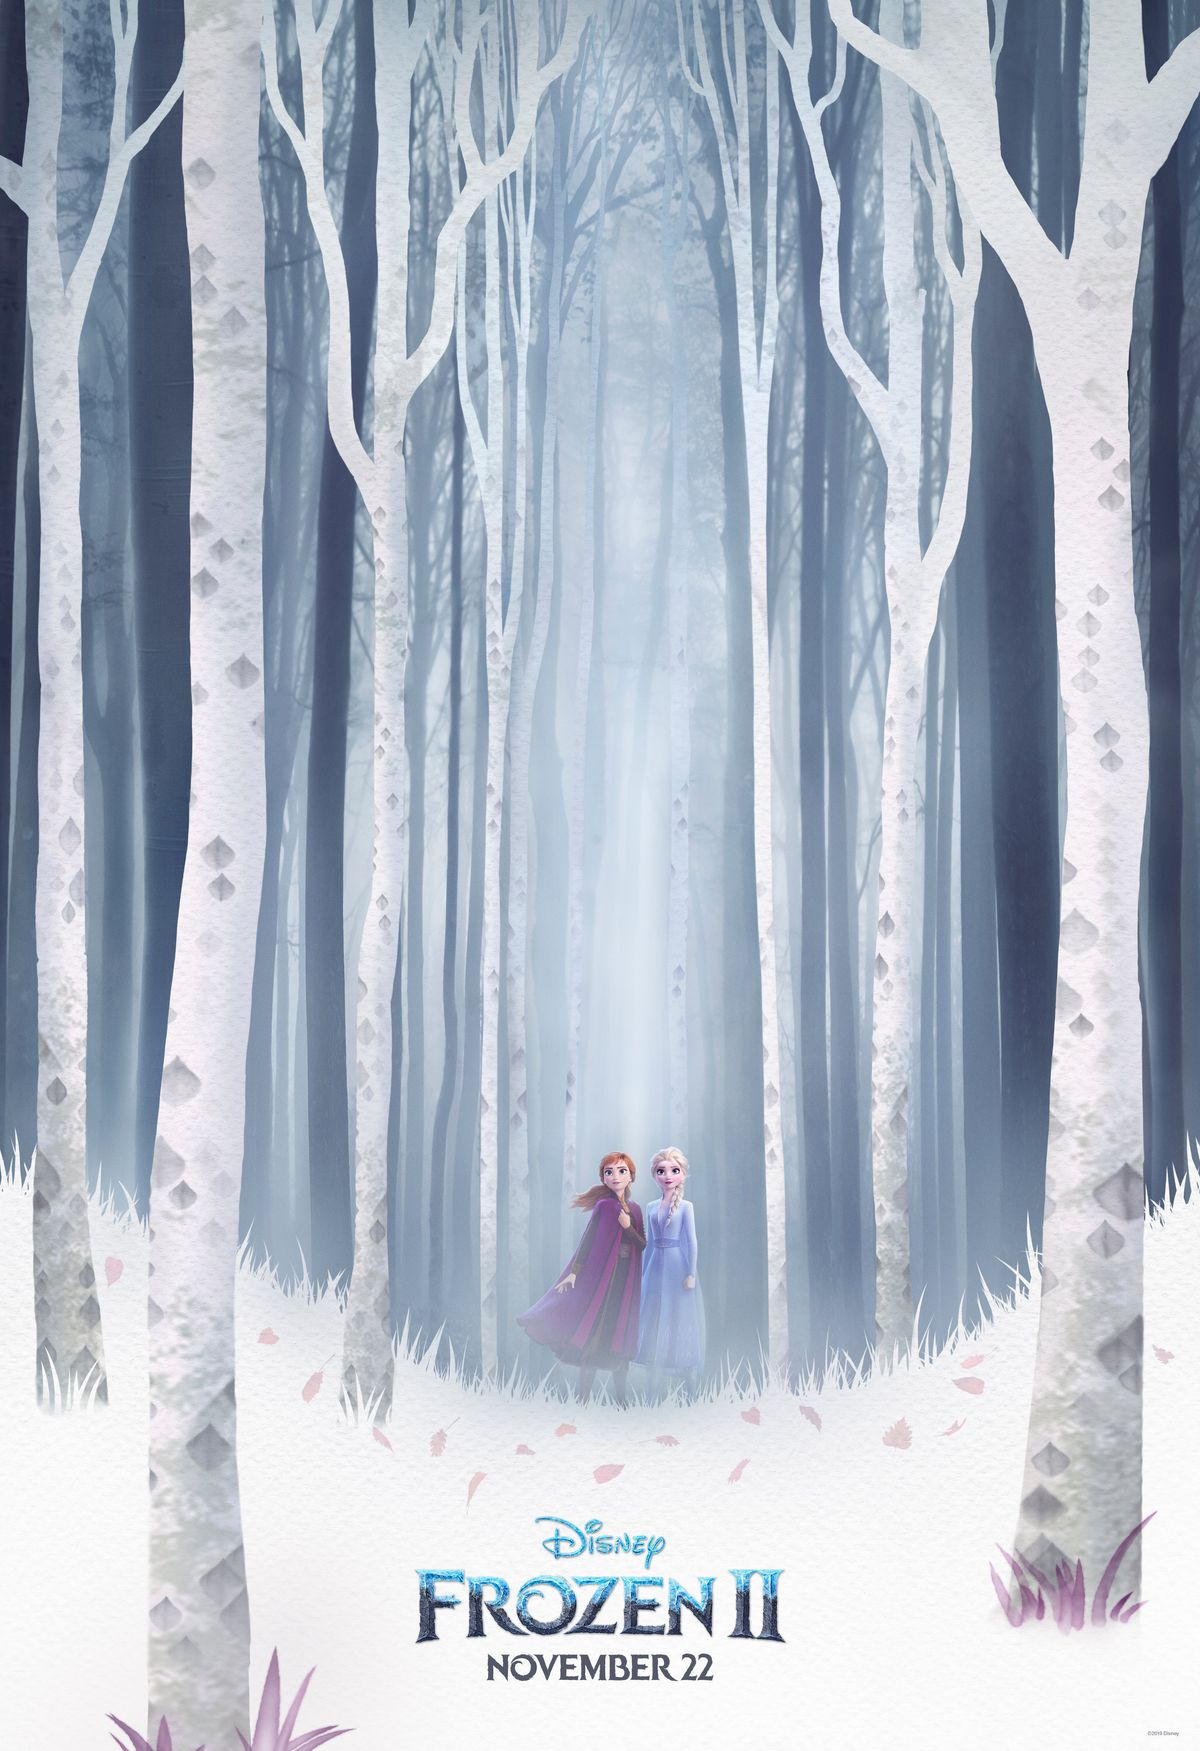 anna and elsa from frozen stand in a winter forest, there is snow around them